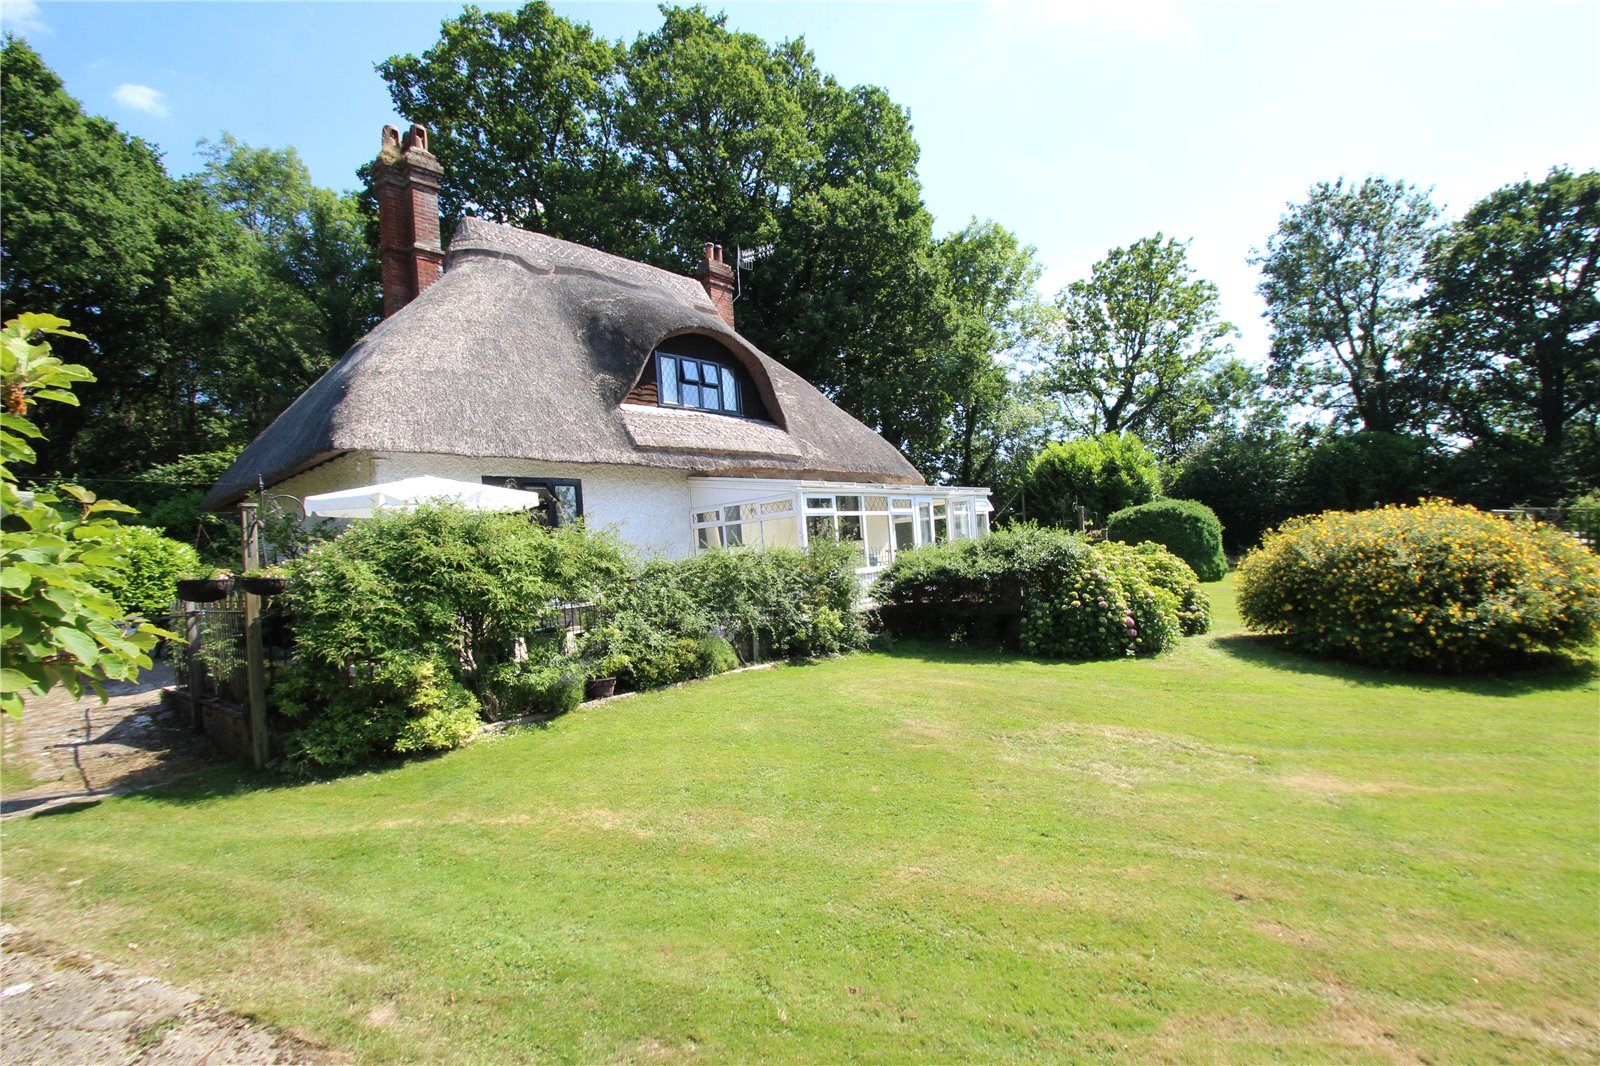 Stick Hill, Hartfield Road, Edenbridge - £700,000